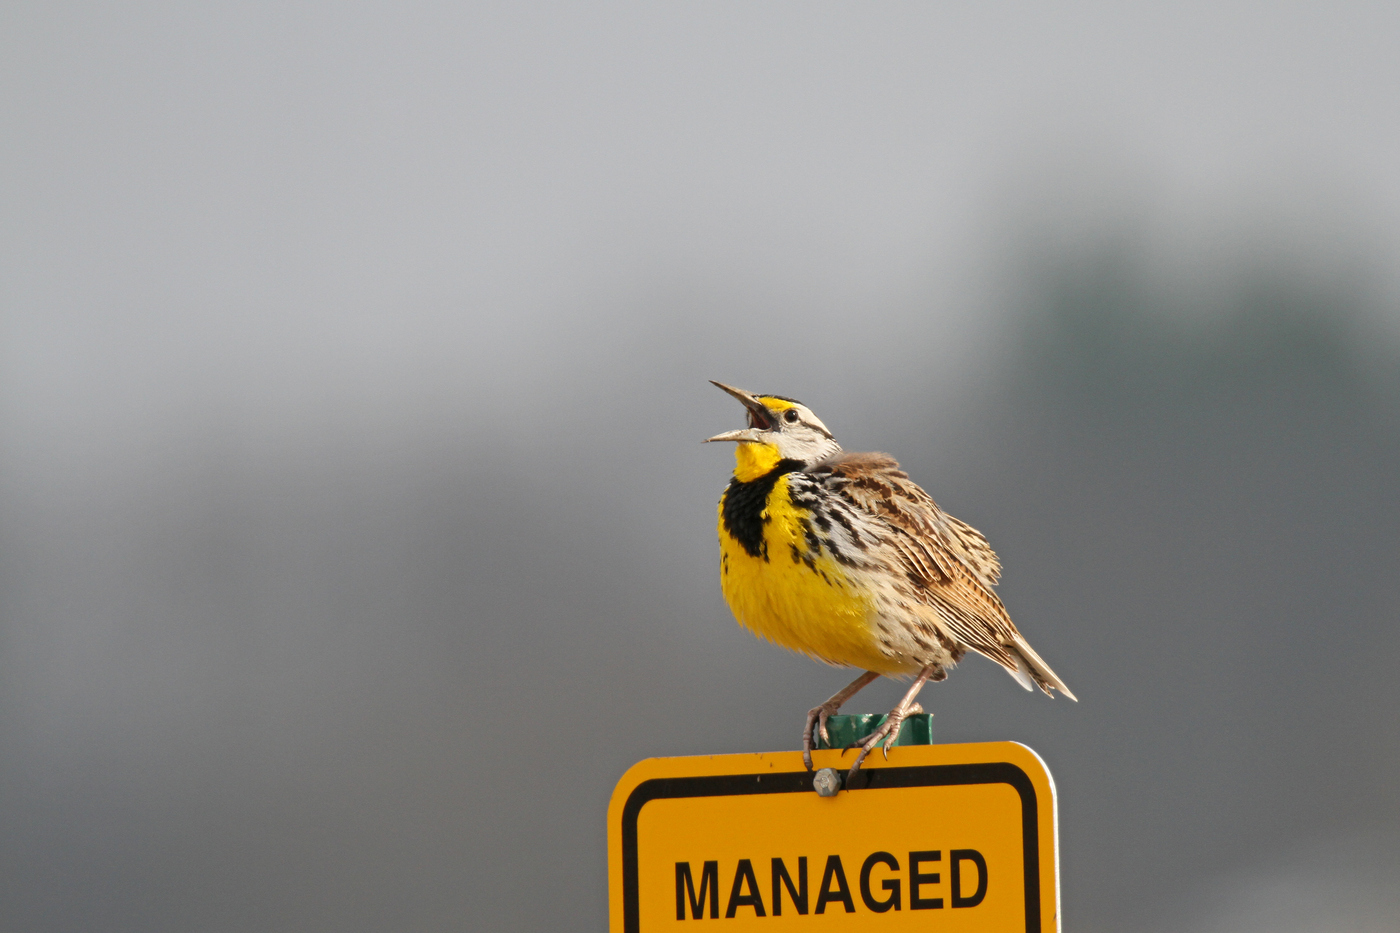 Eastern Meadowlark #12